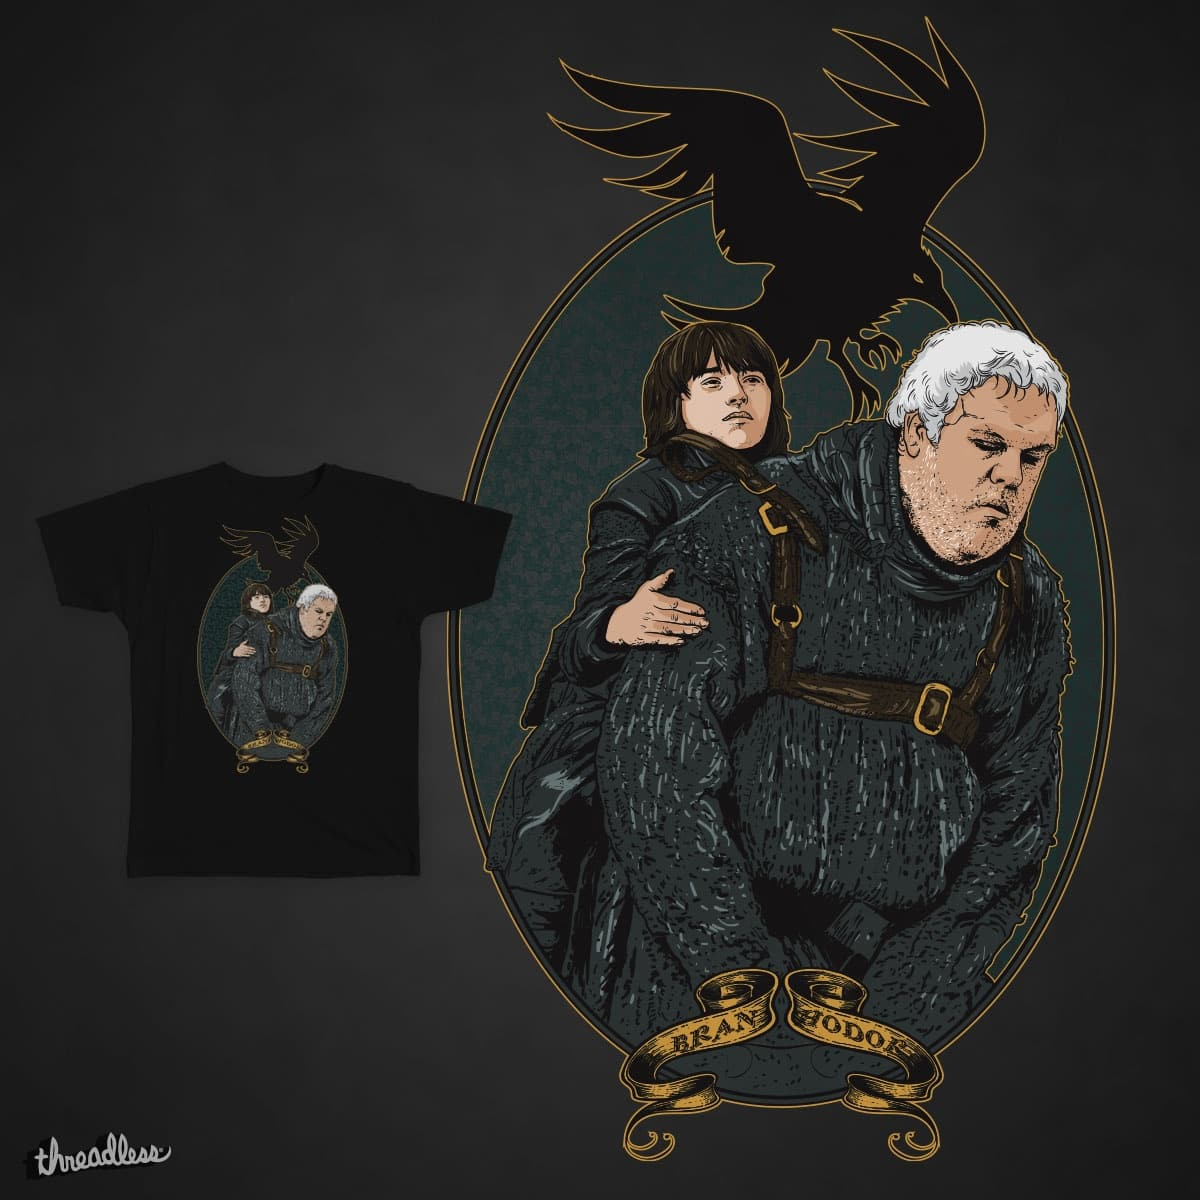 Hodor Faster Stronger by rohan.jha.792 on Threadless